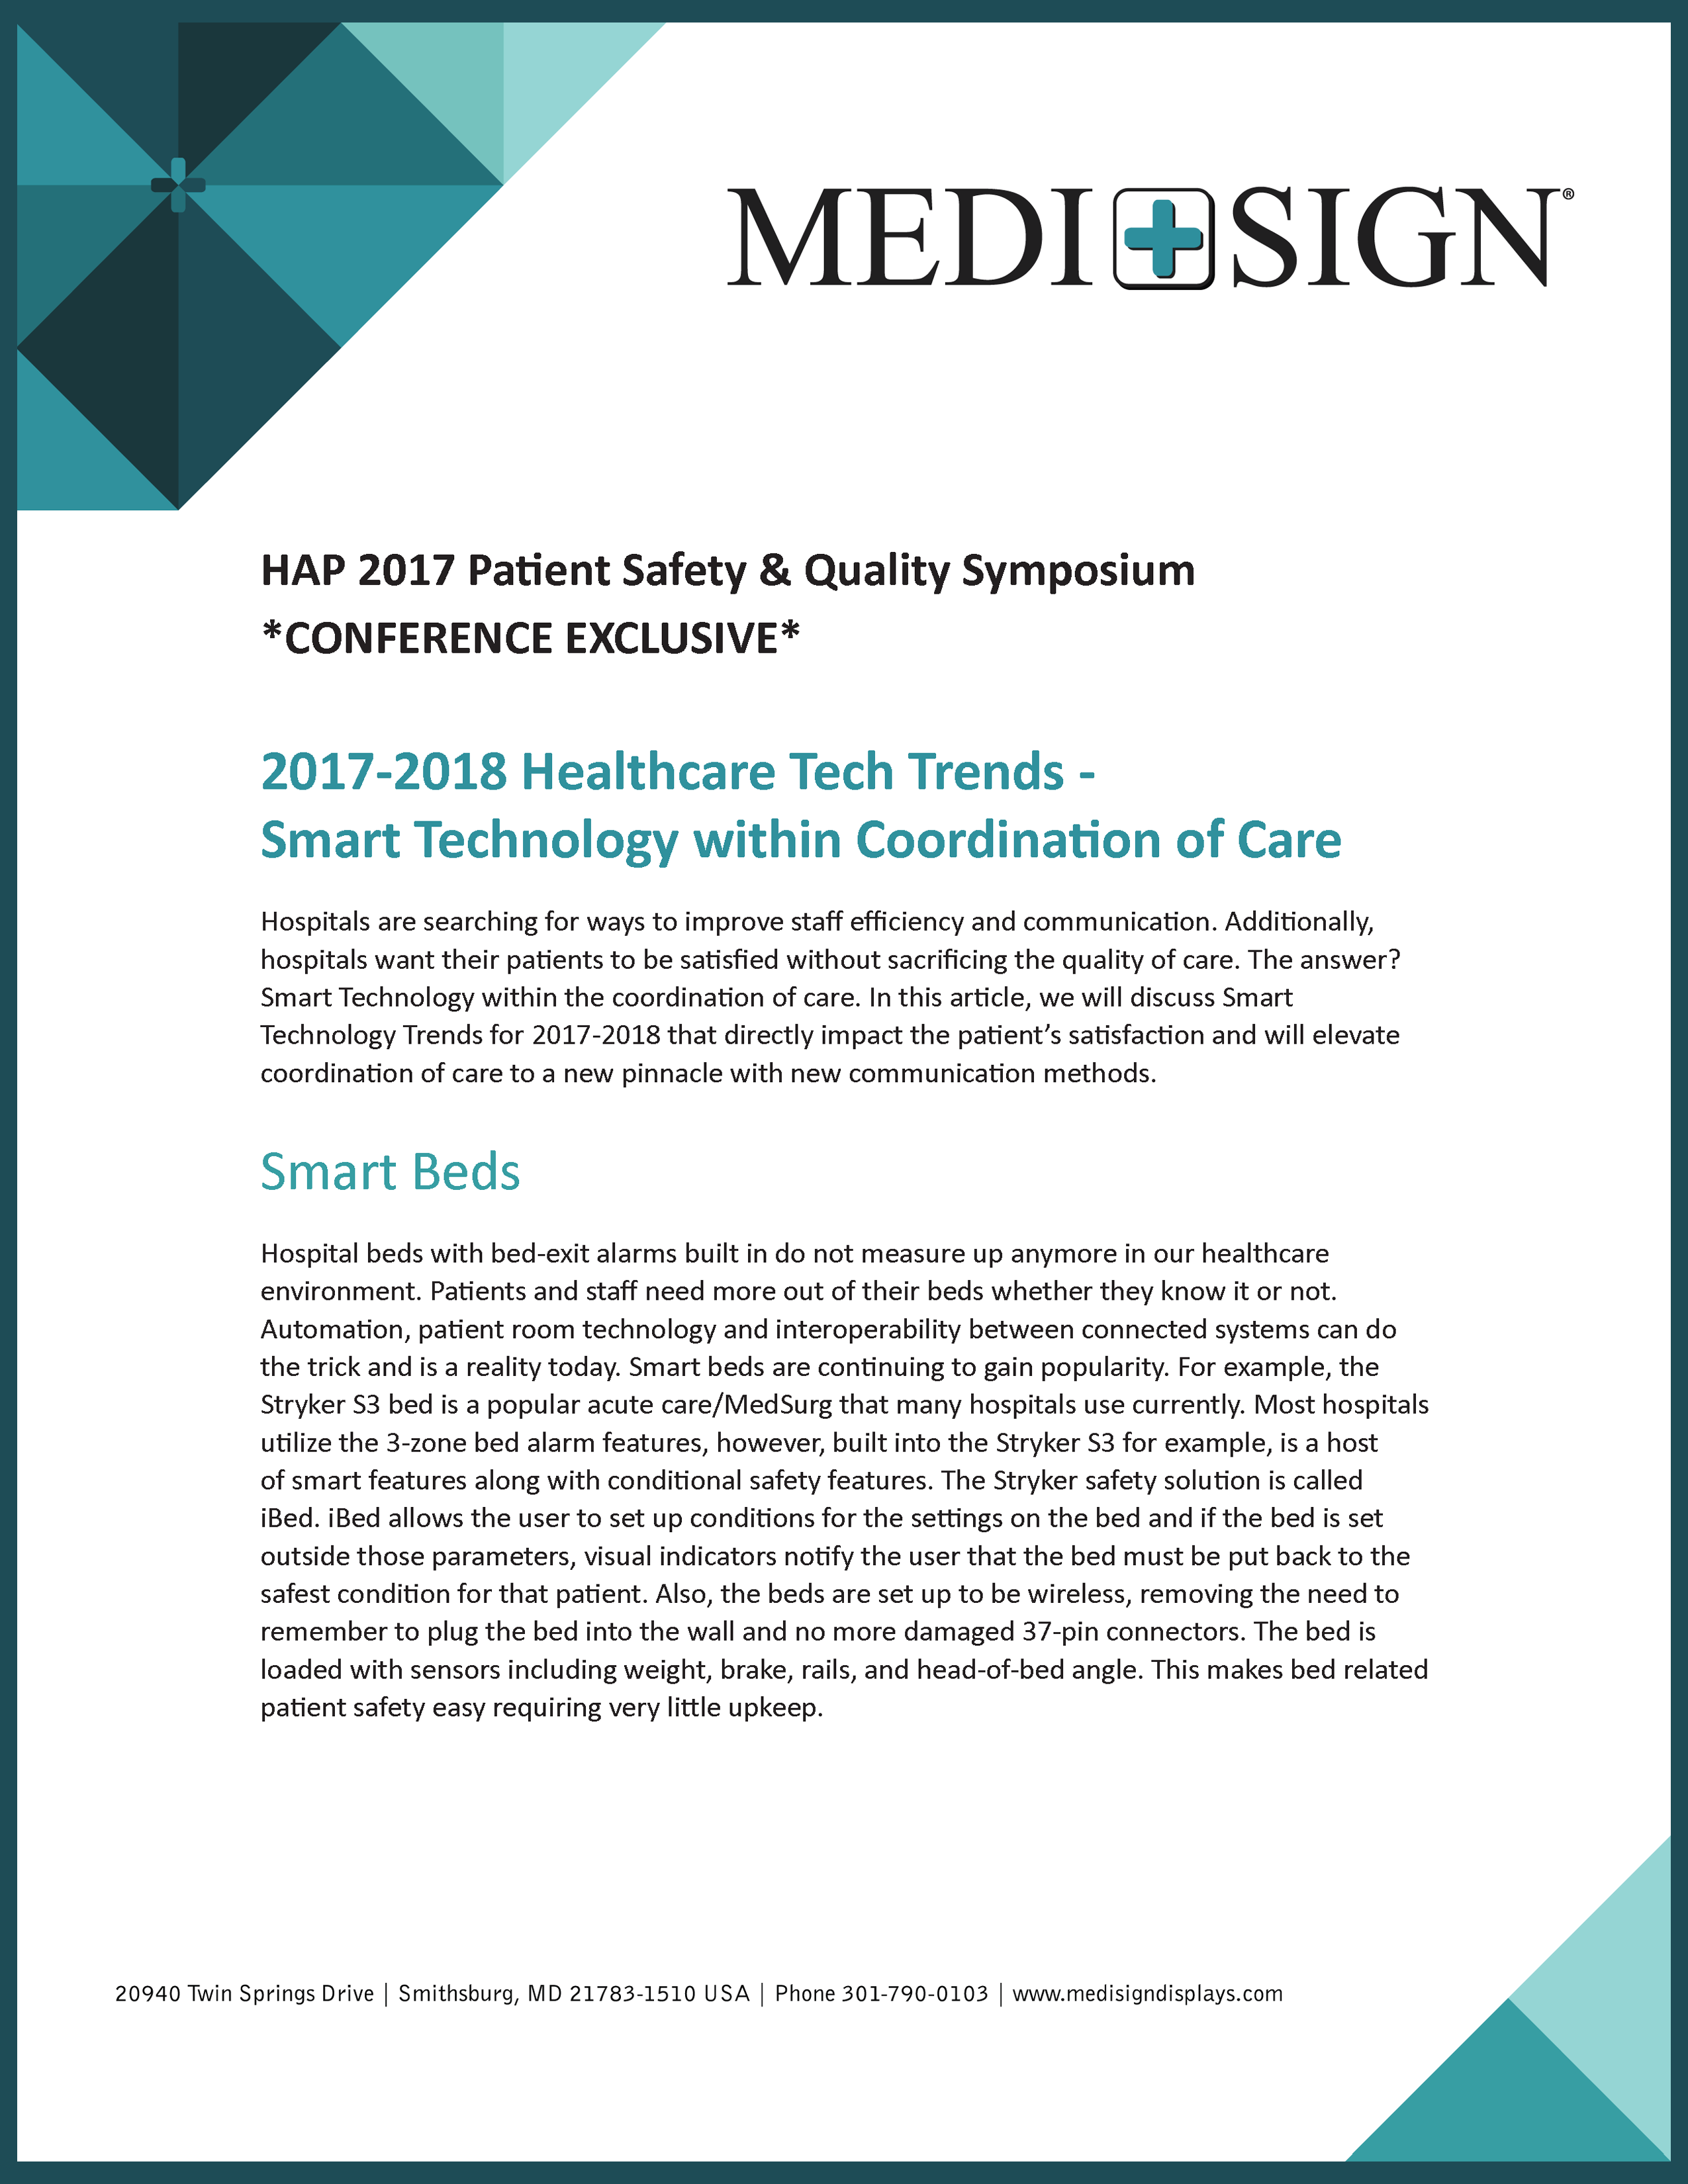 Thumbnail of Patient Safety Whitepaper